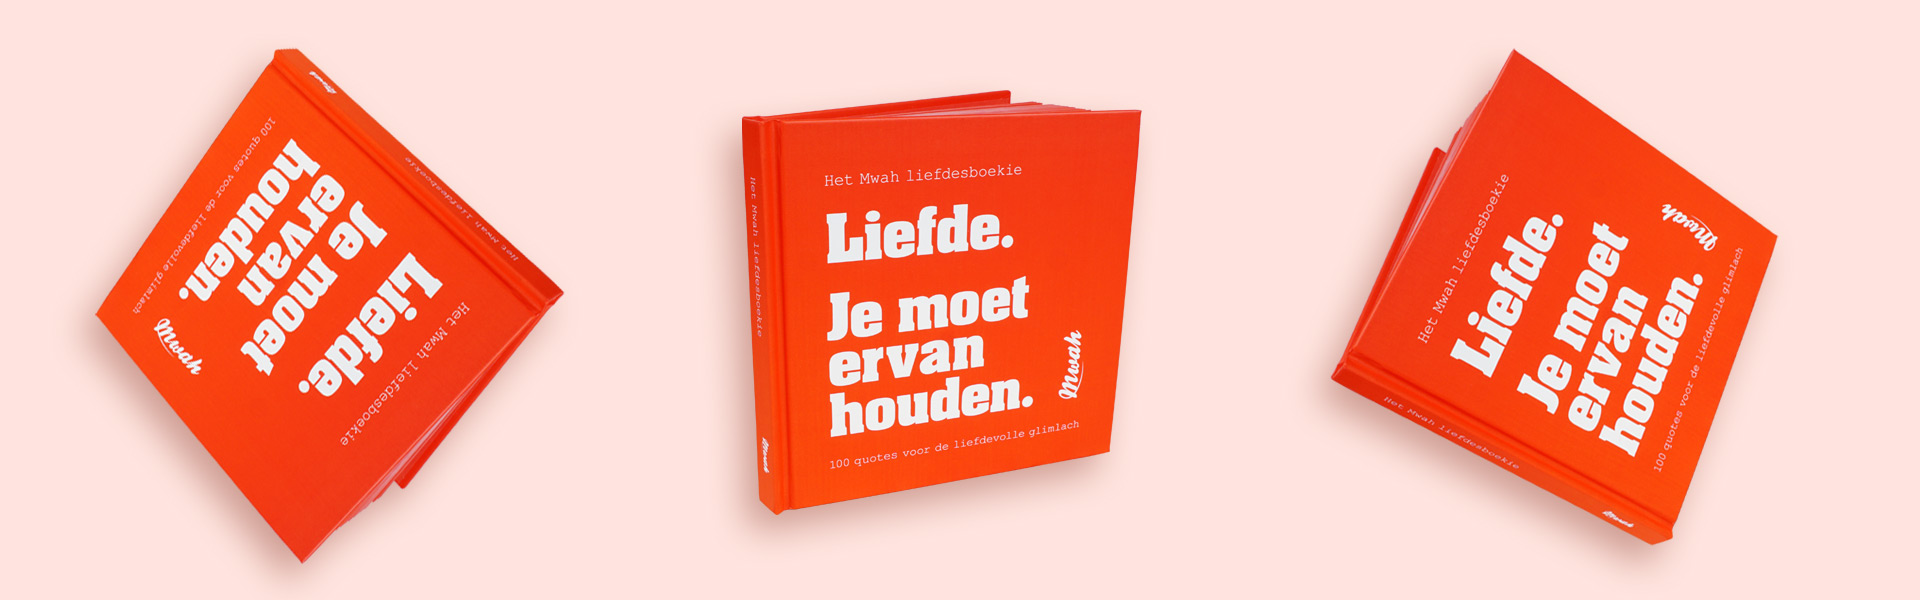 mwah_liefdesboekje_home_1